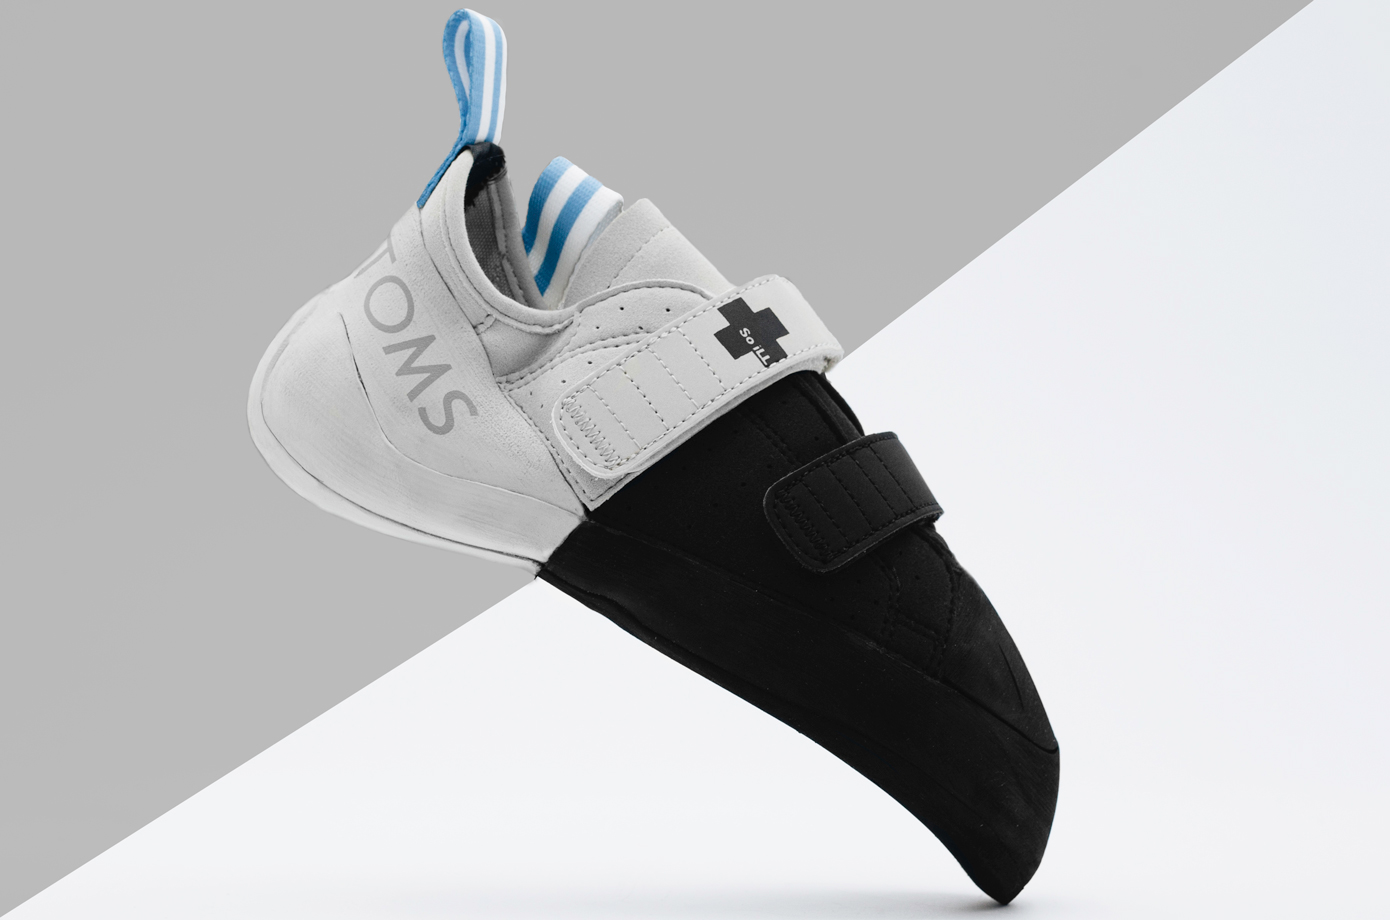 So iLL x TOMS Men's The Street Climbing Shoe with Dark Matter Rubber. Part of 1Climb's Indiegogo Campaign.